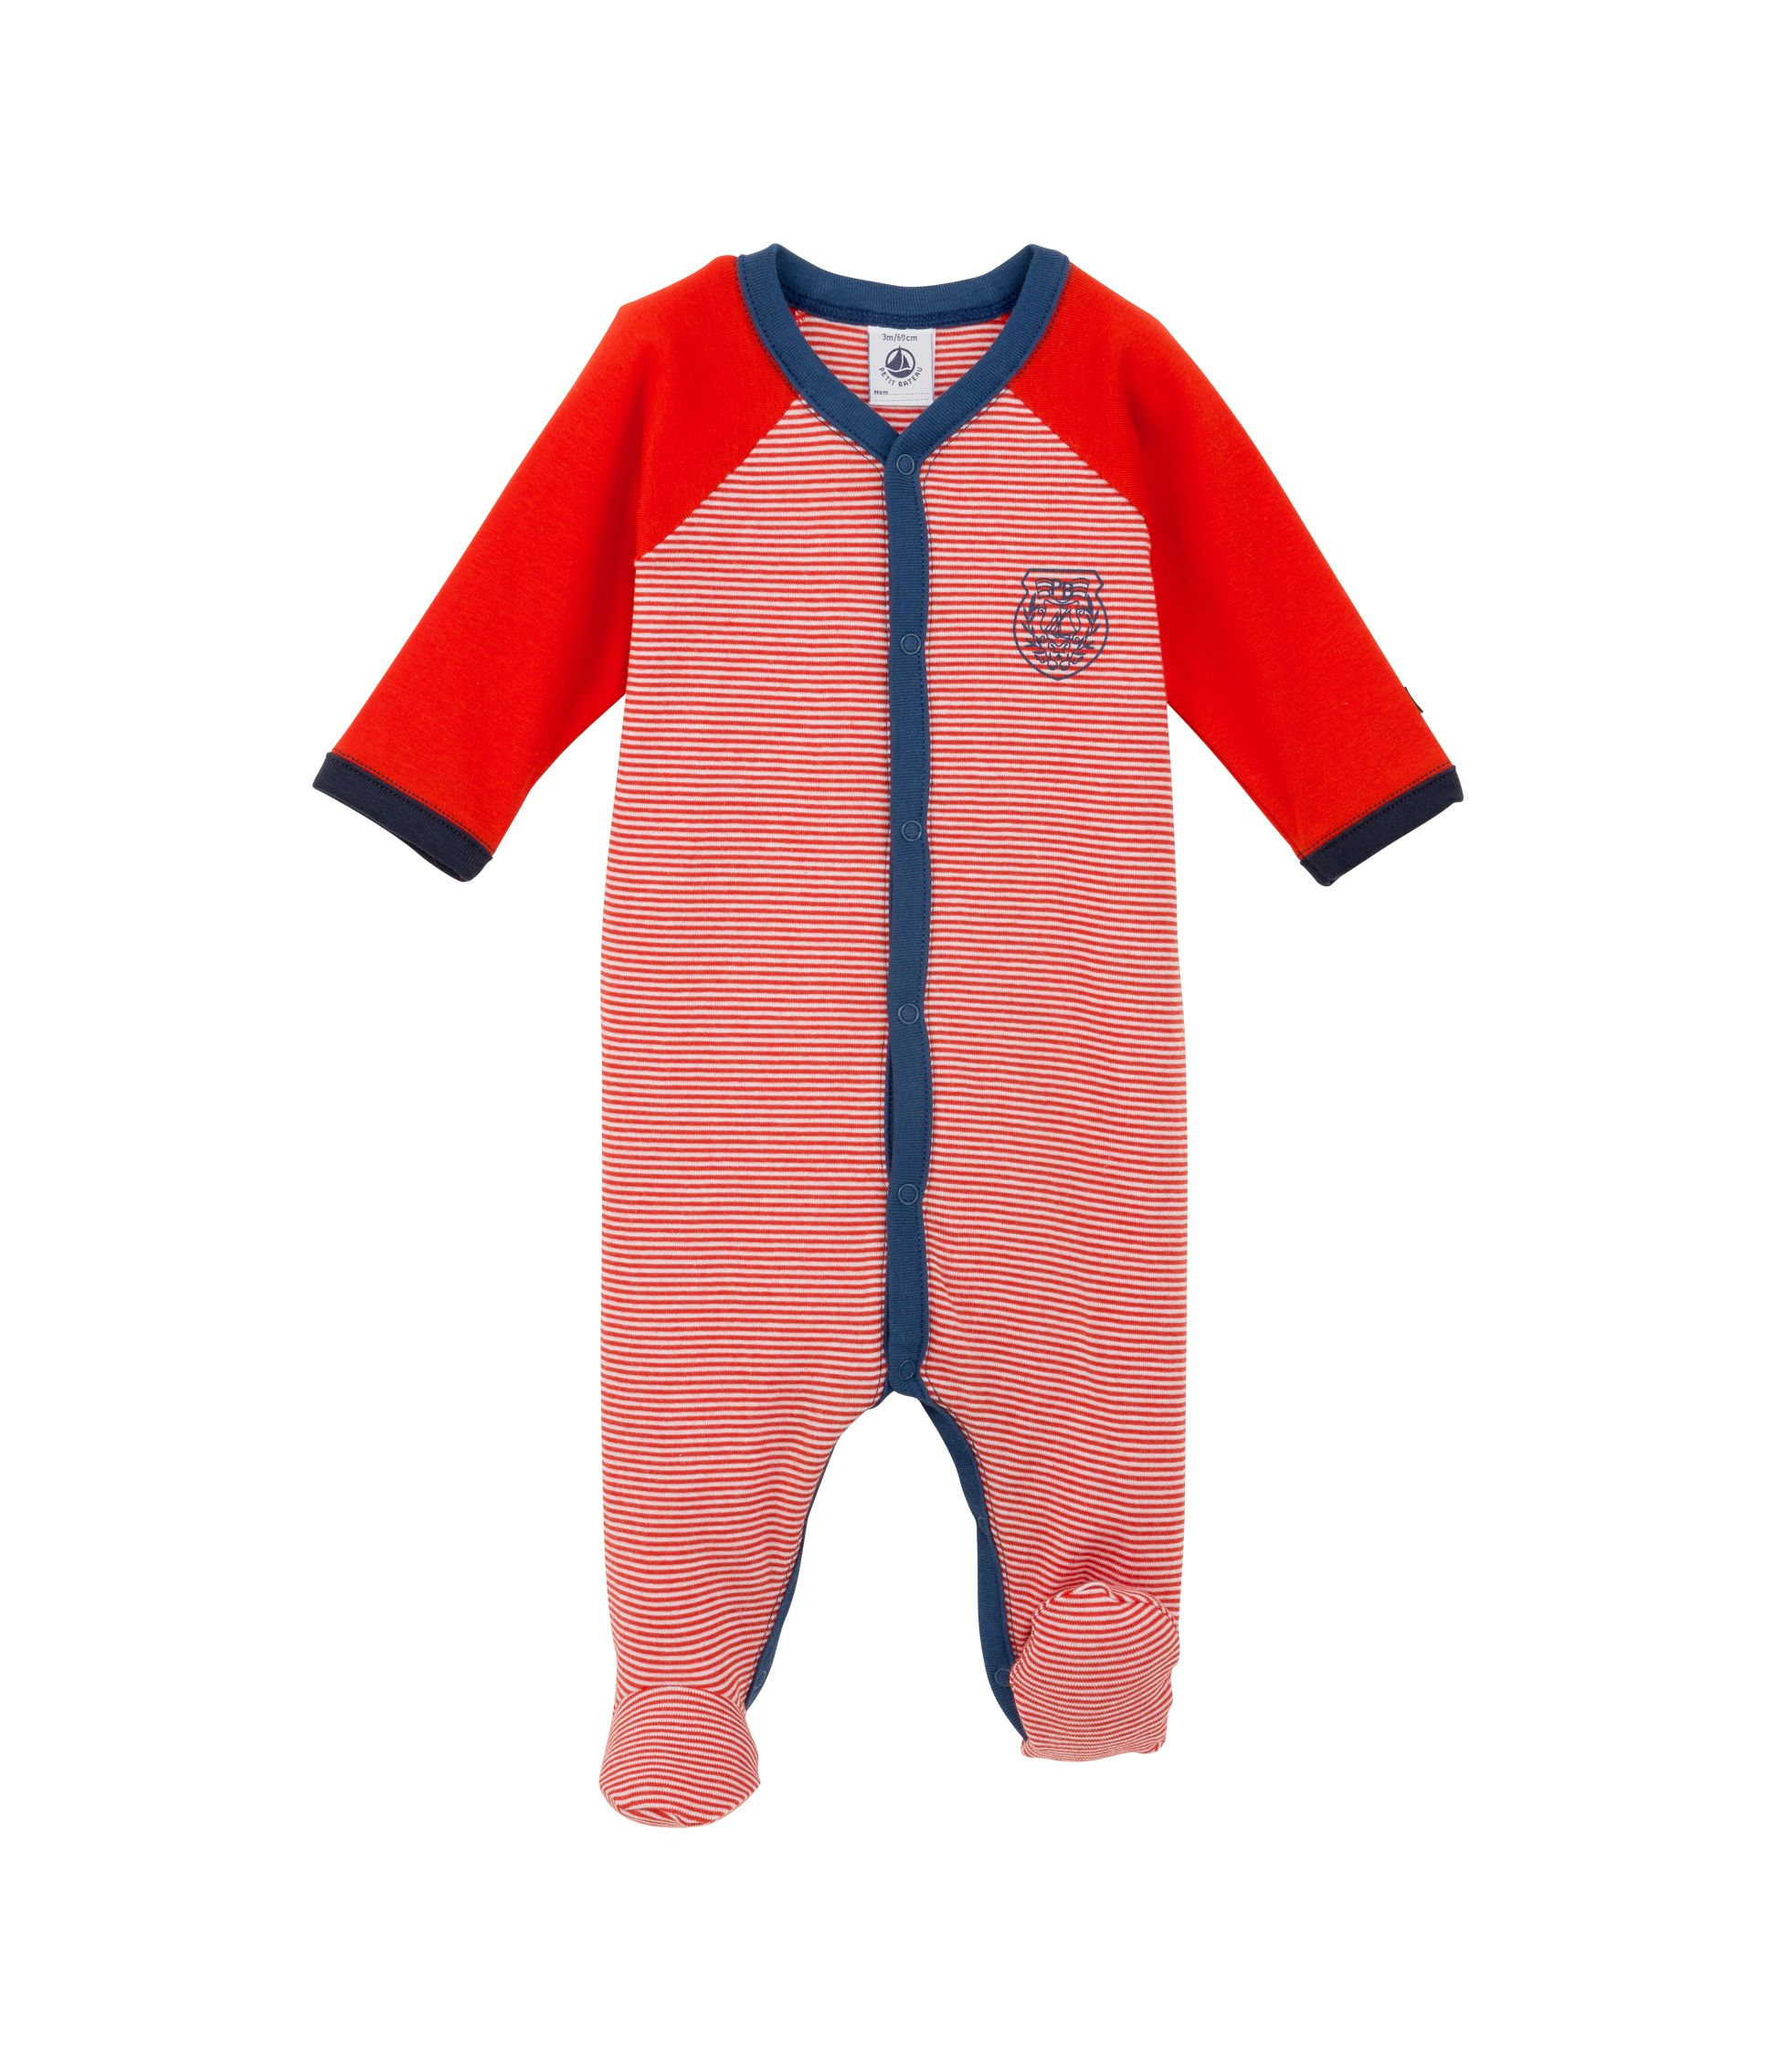 Baby boys milleraies sleepsuit